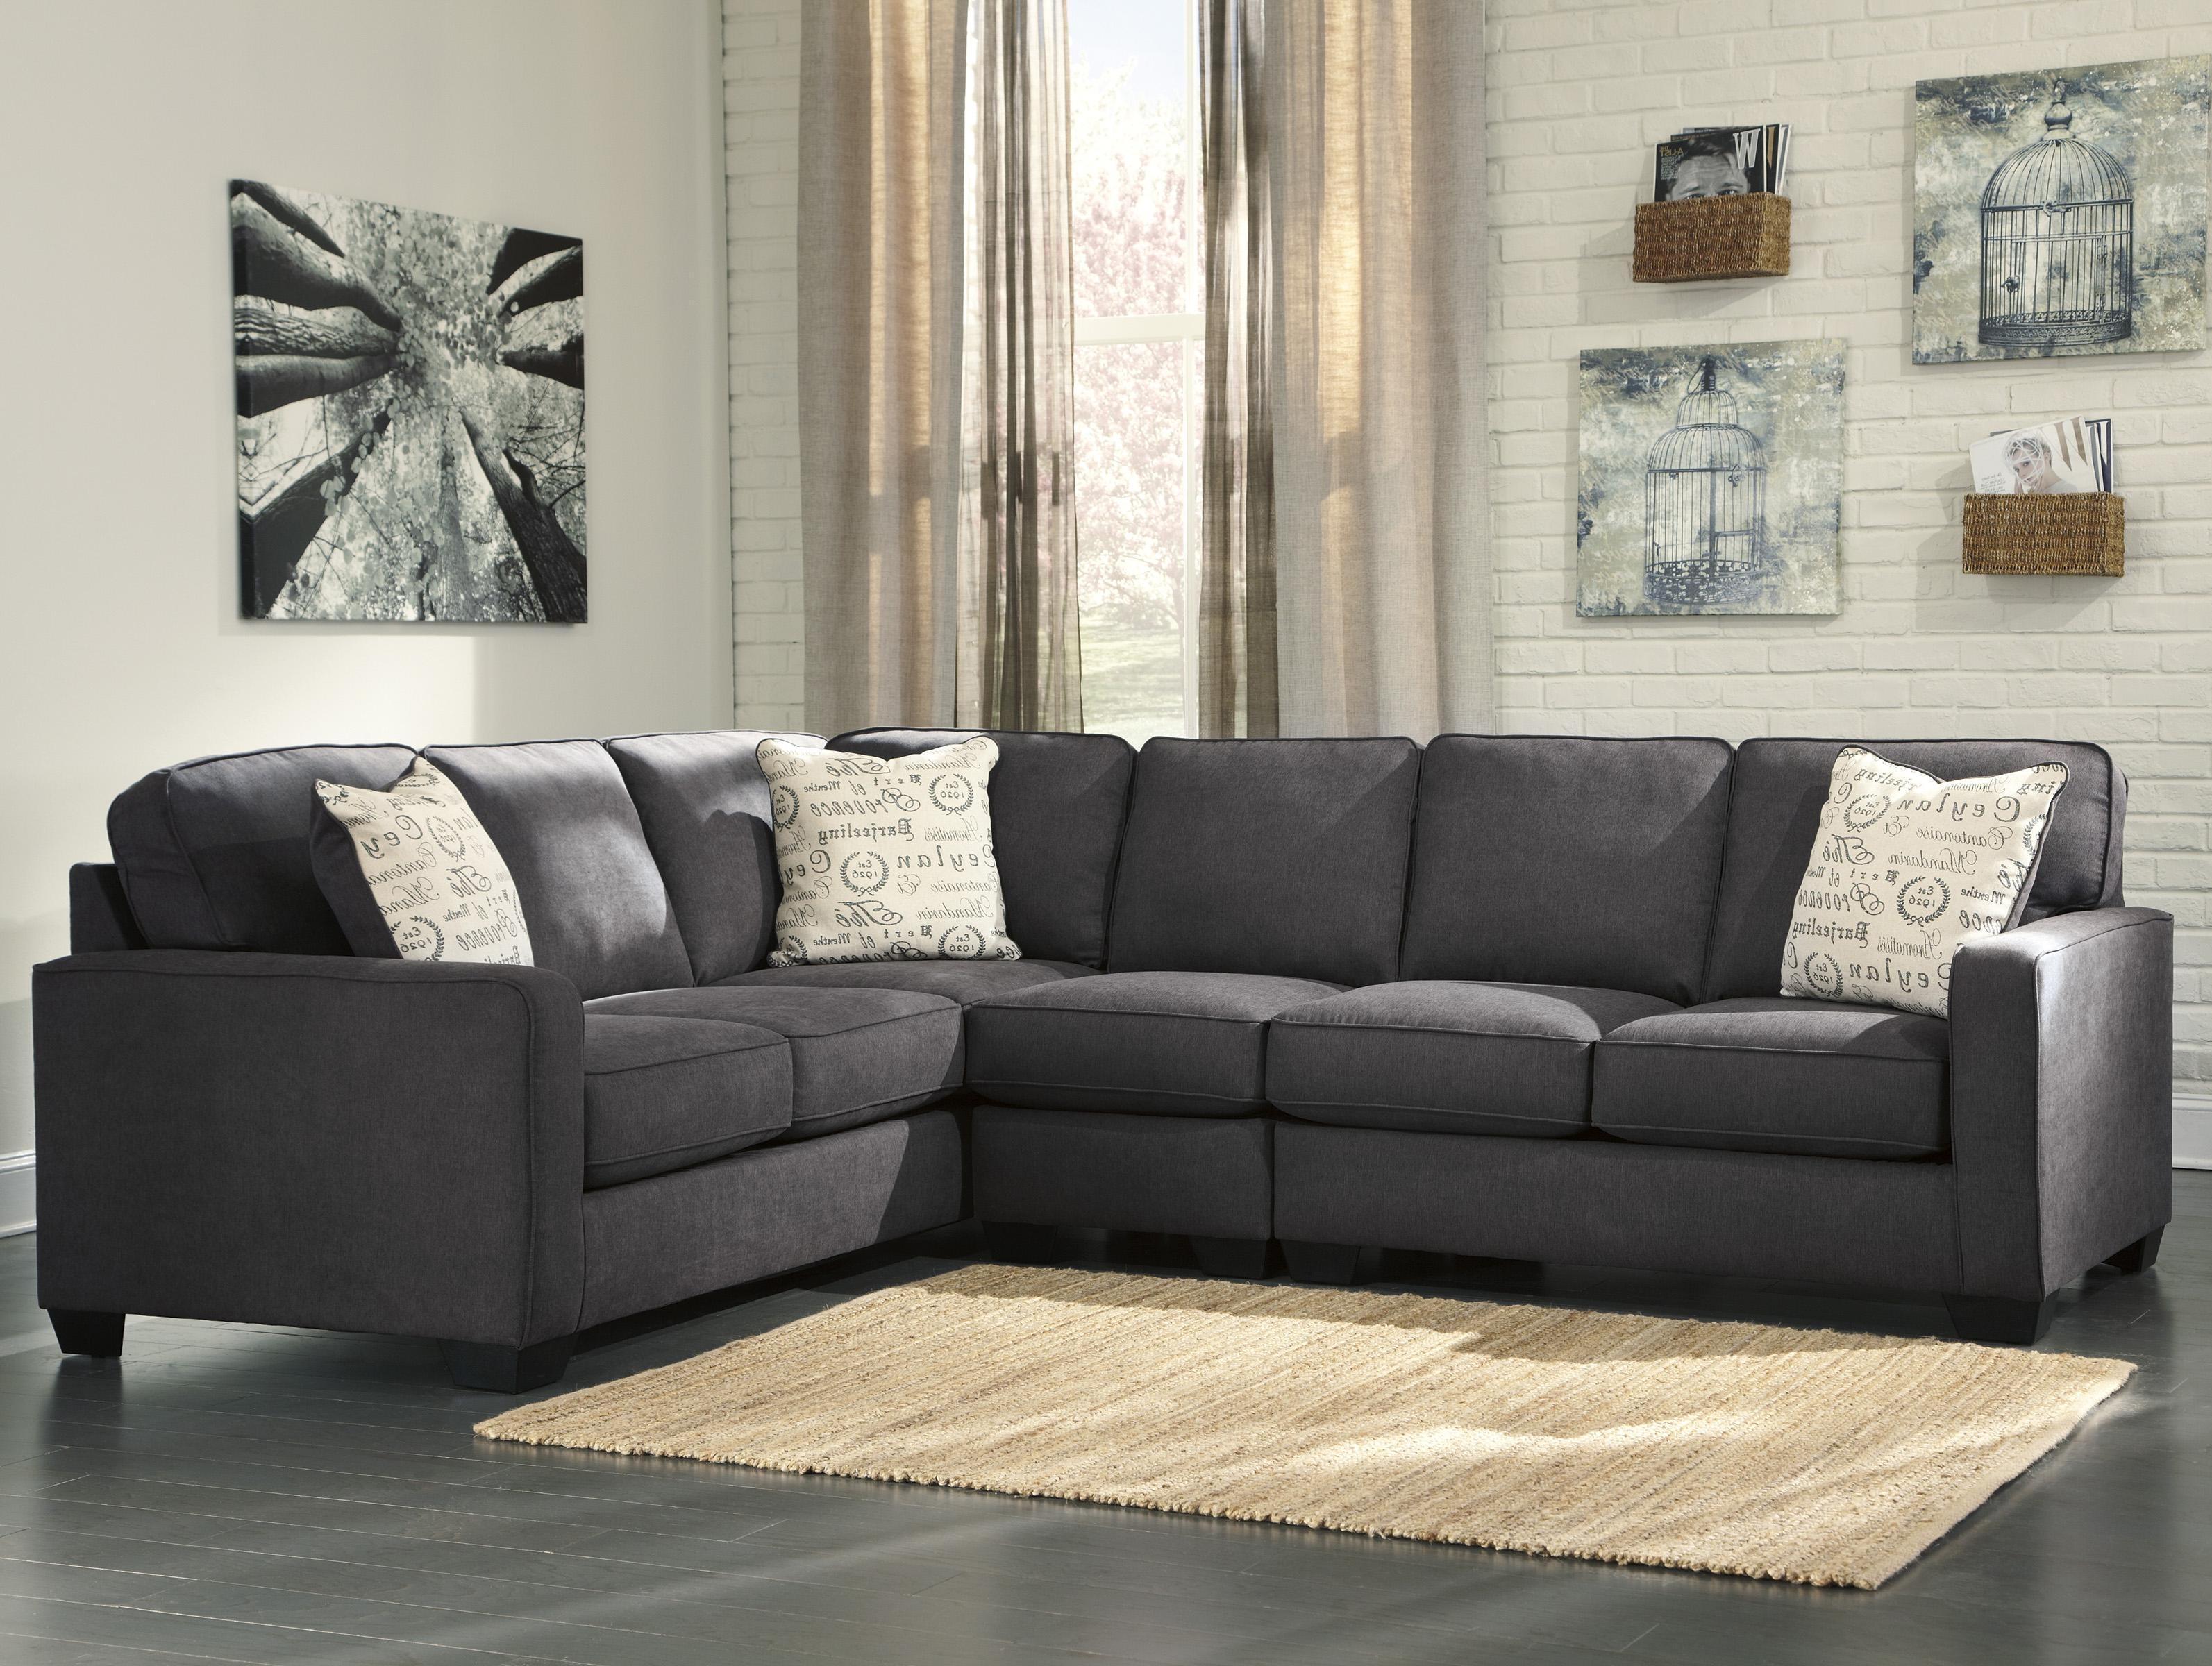 Sofas : Awesome Small Sectional Microfiber Sectional Couch Throughout Small 2 Piece Sectional Sofas (View 14 of 23)